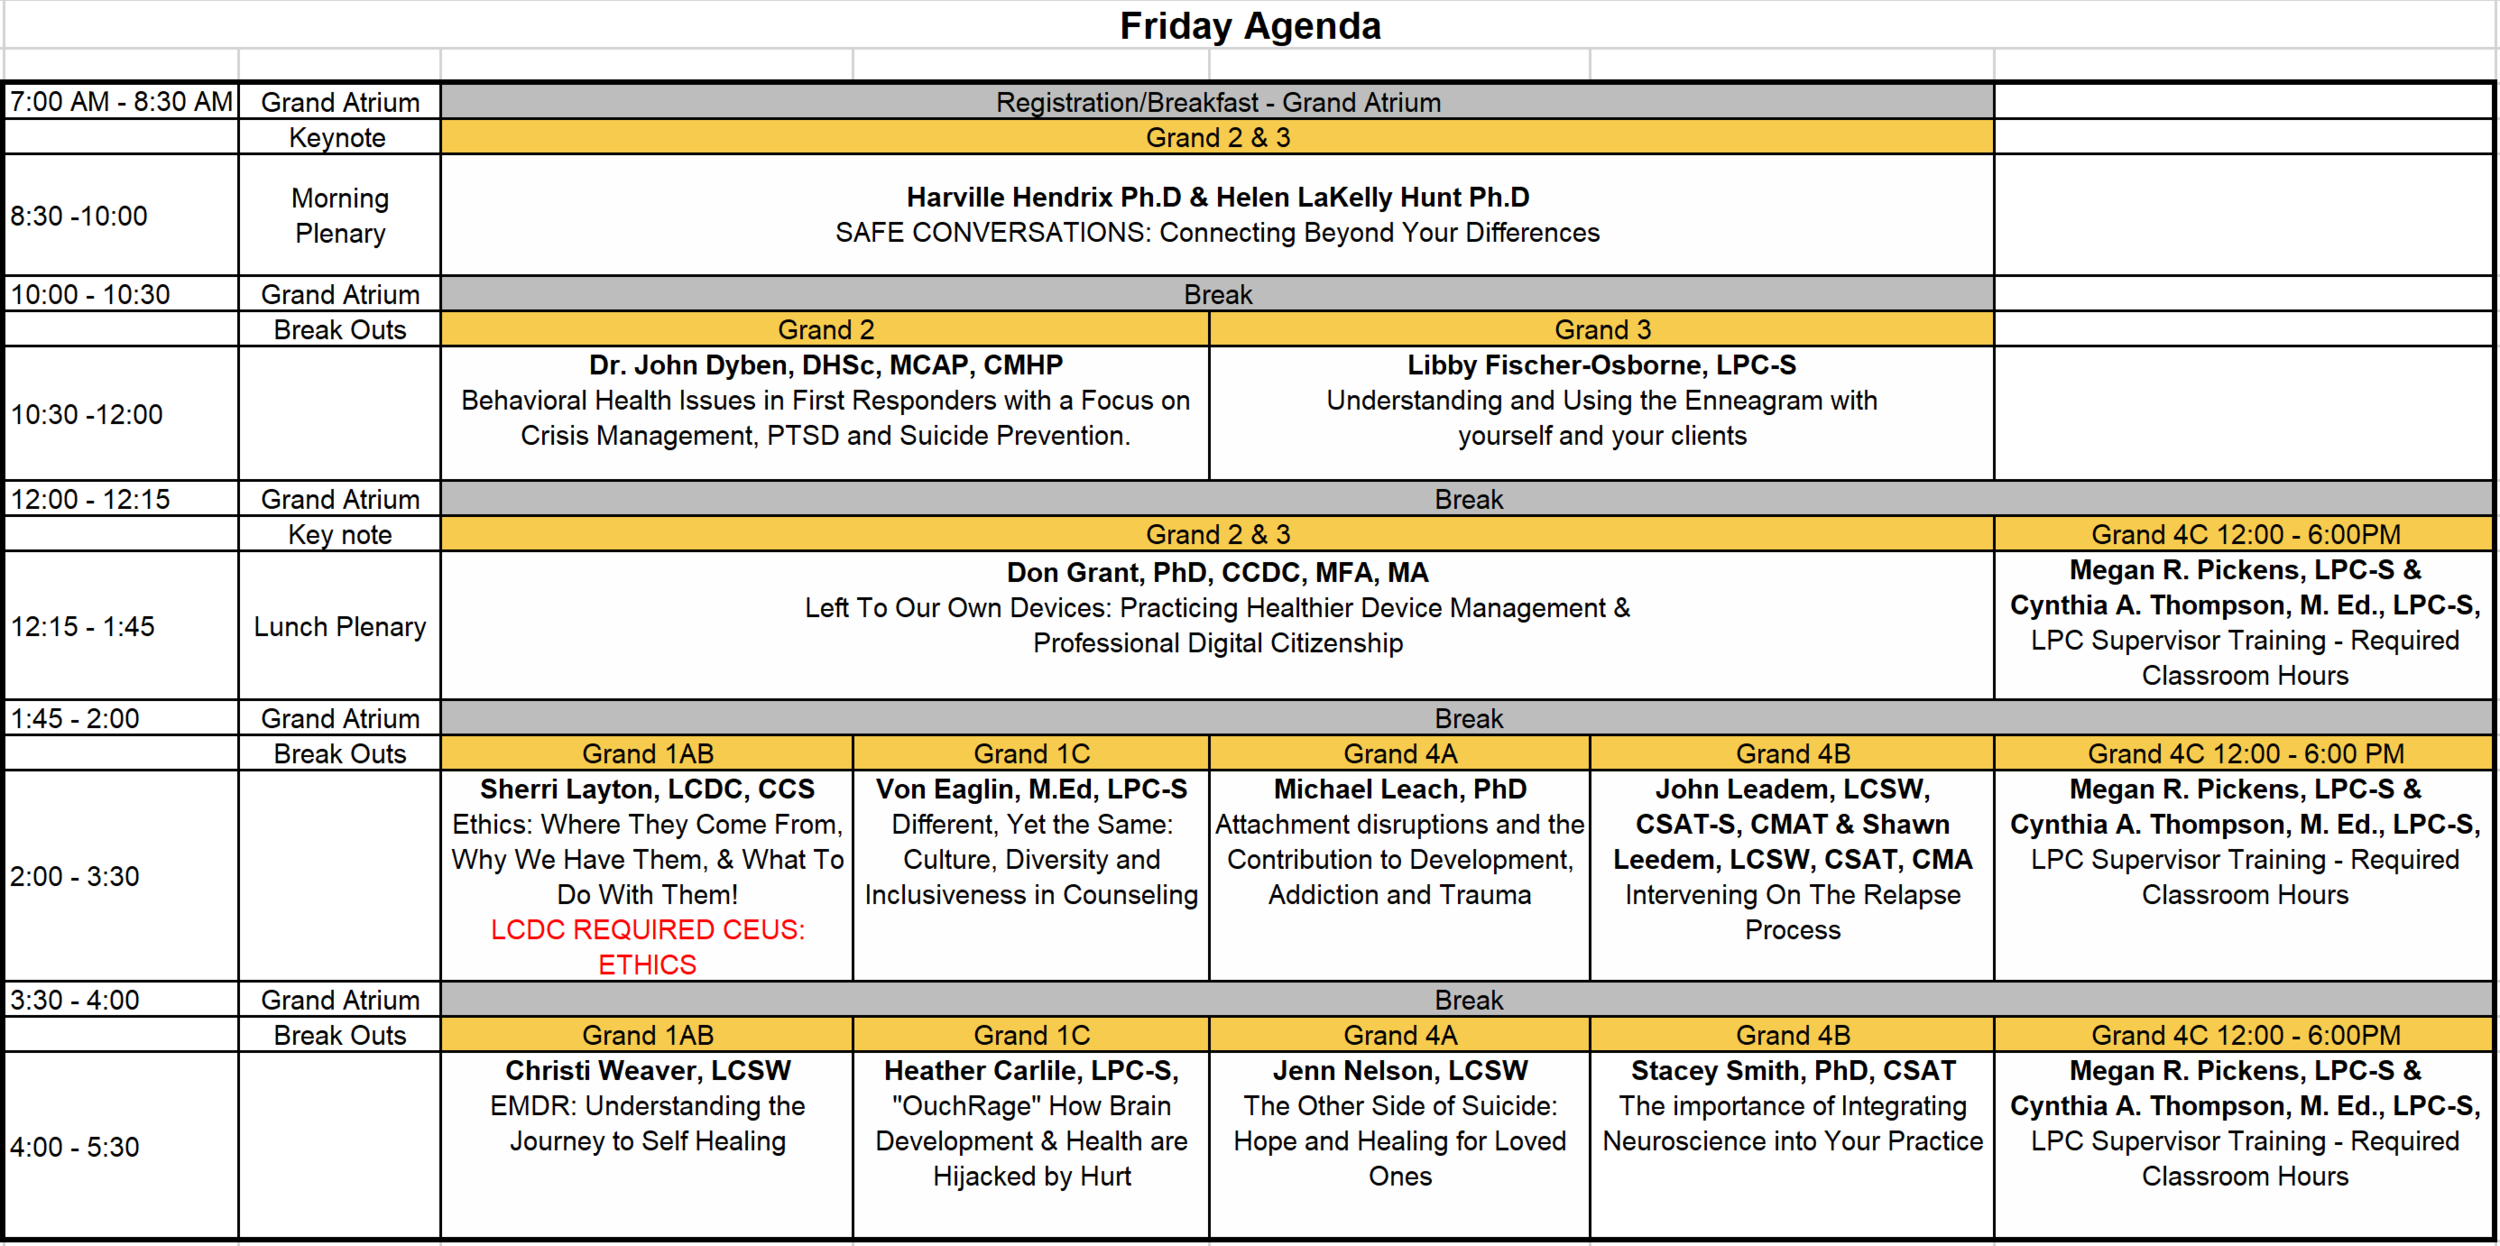 Friday Agenda 2019.PNG